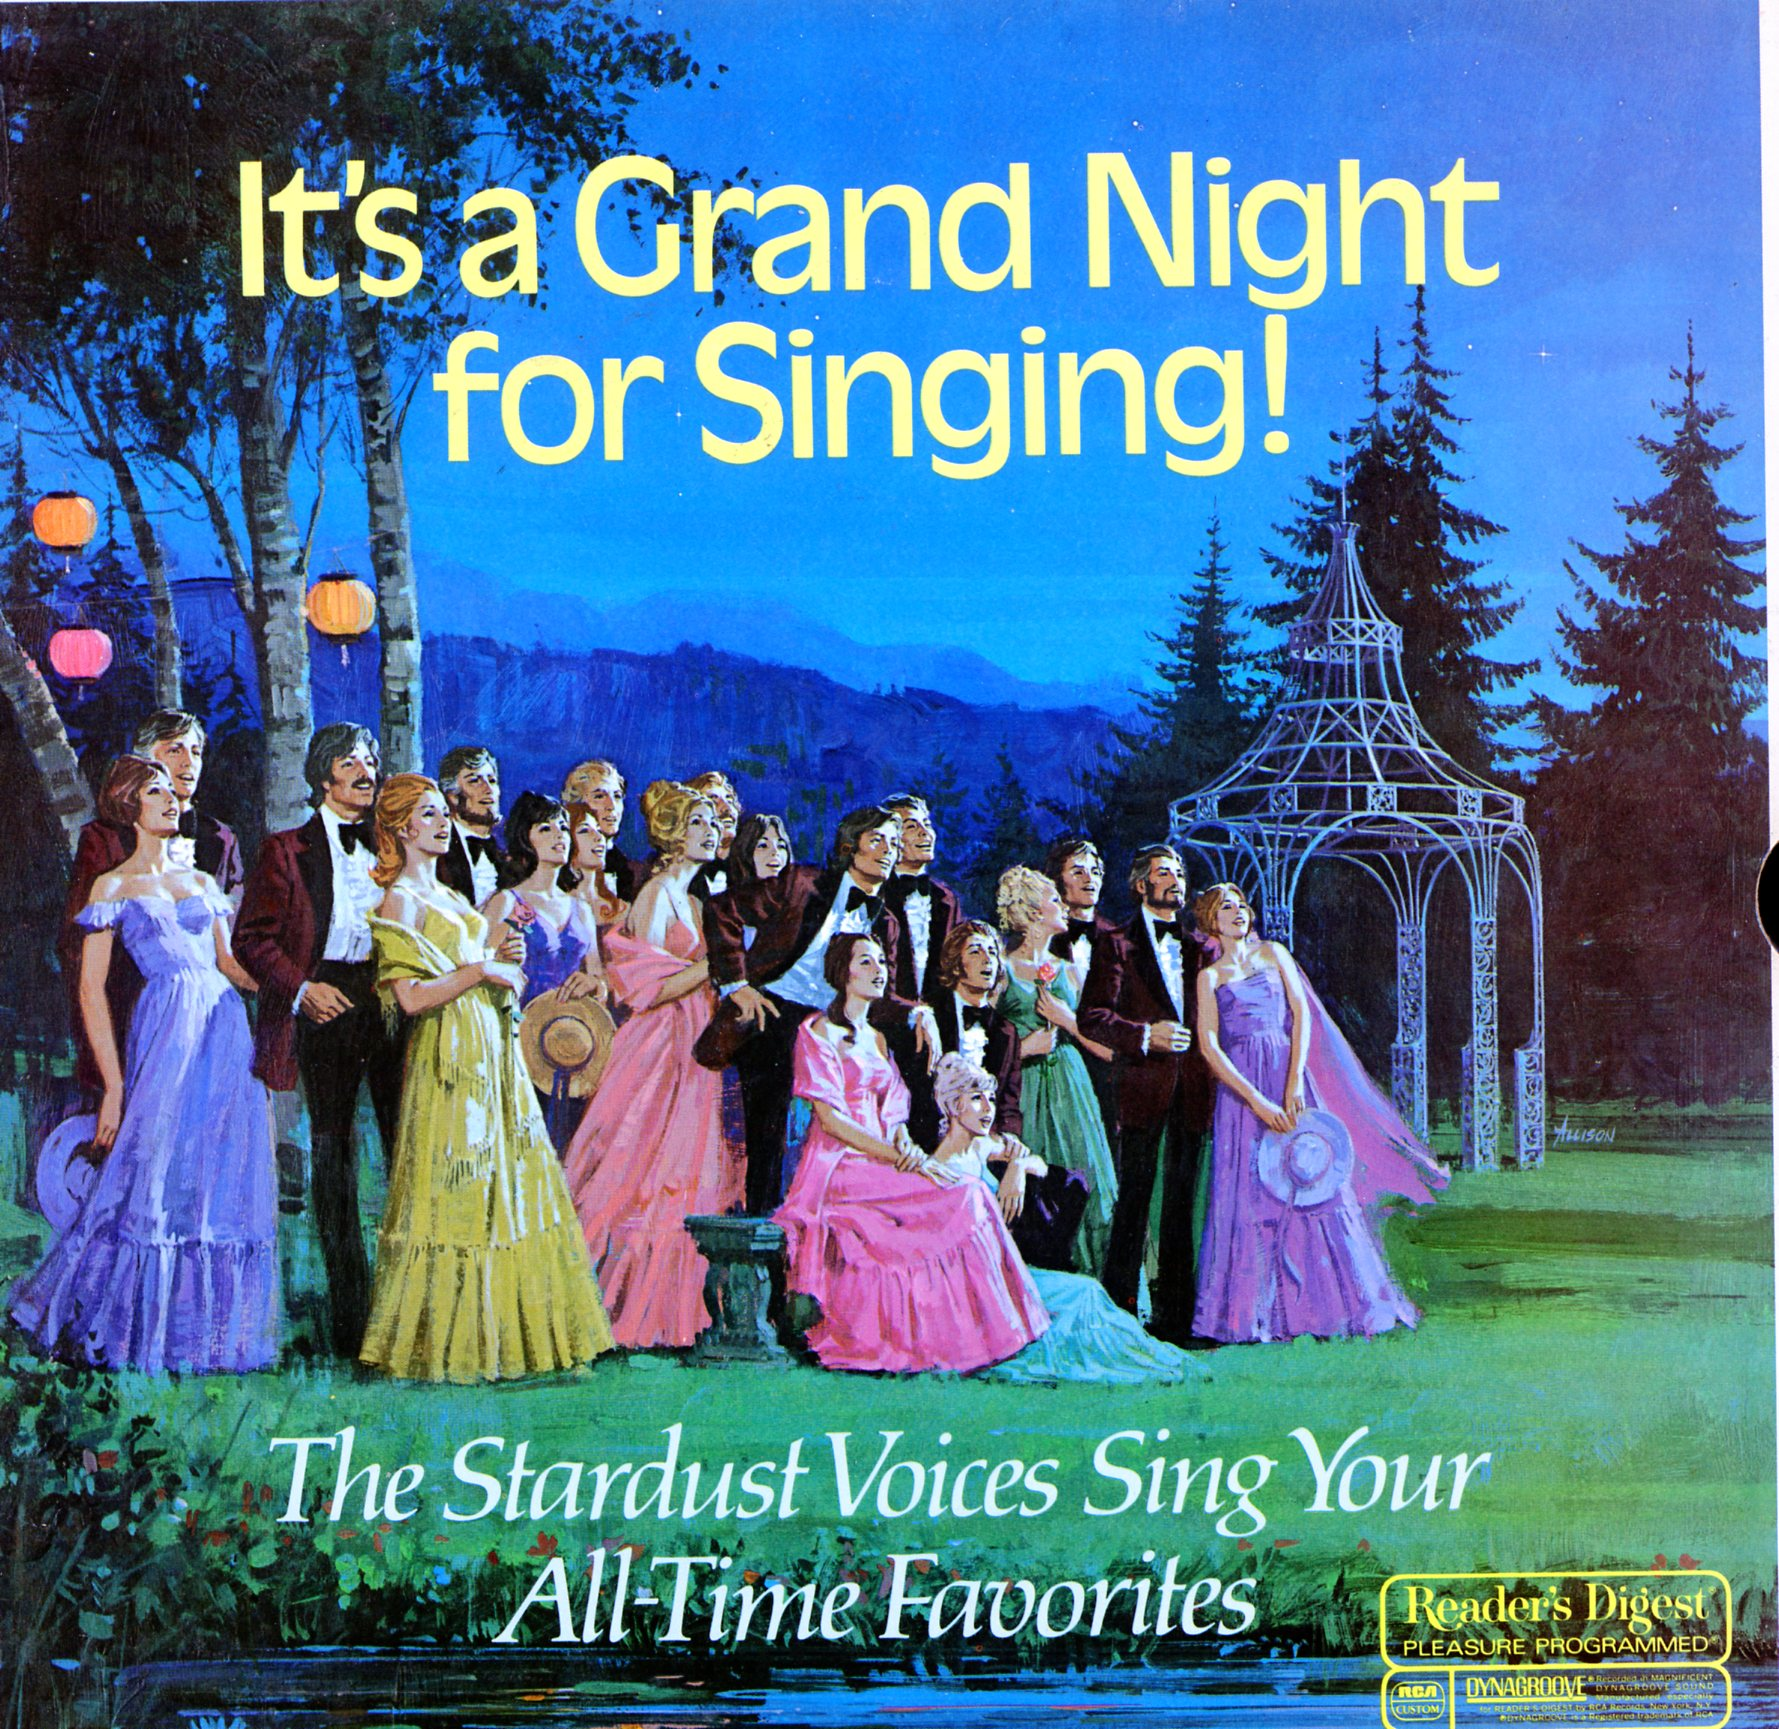 RDA136A - It's A Grand Night For Singing - The Stardust Voices Sing Your All-Time Favorites